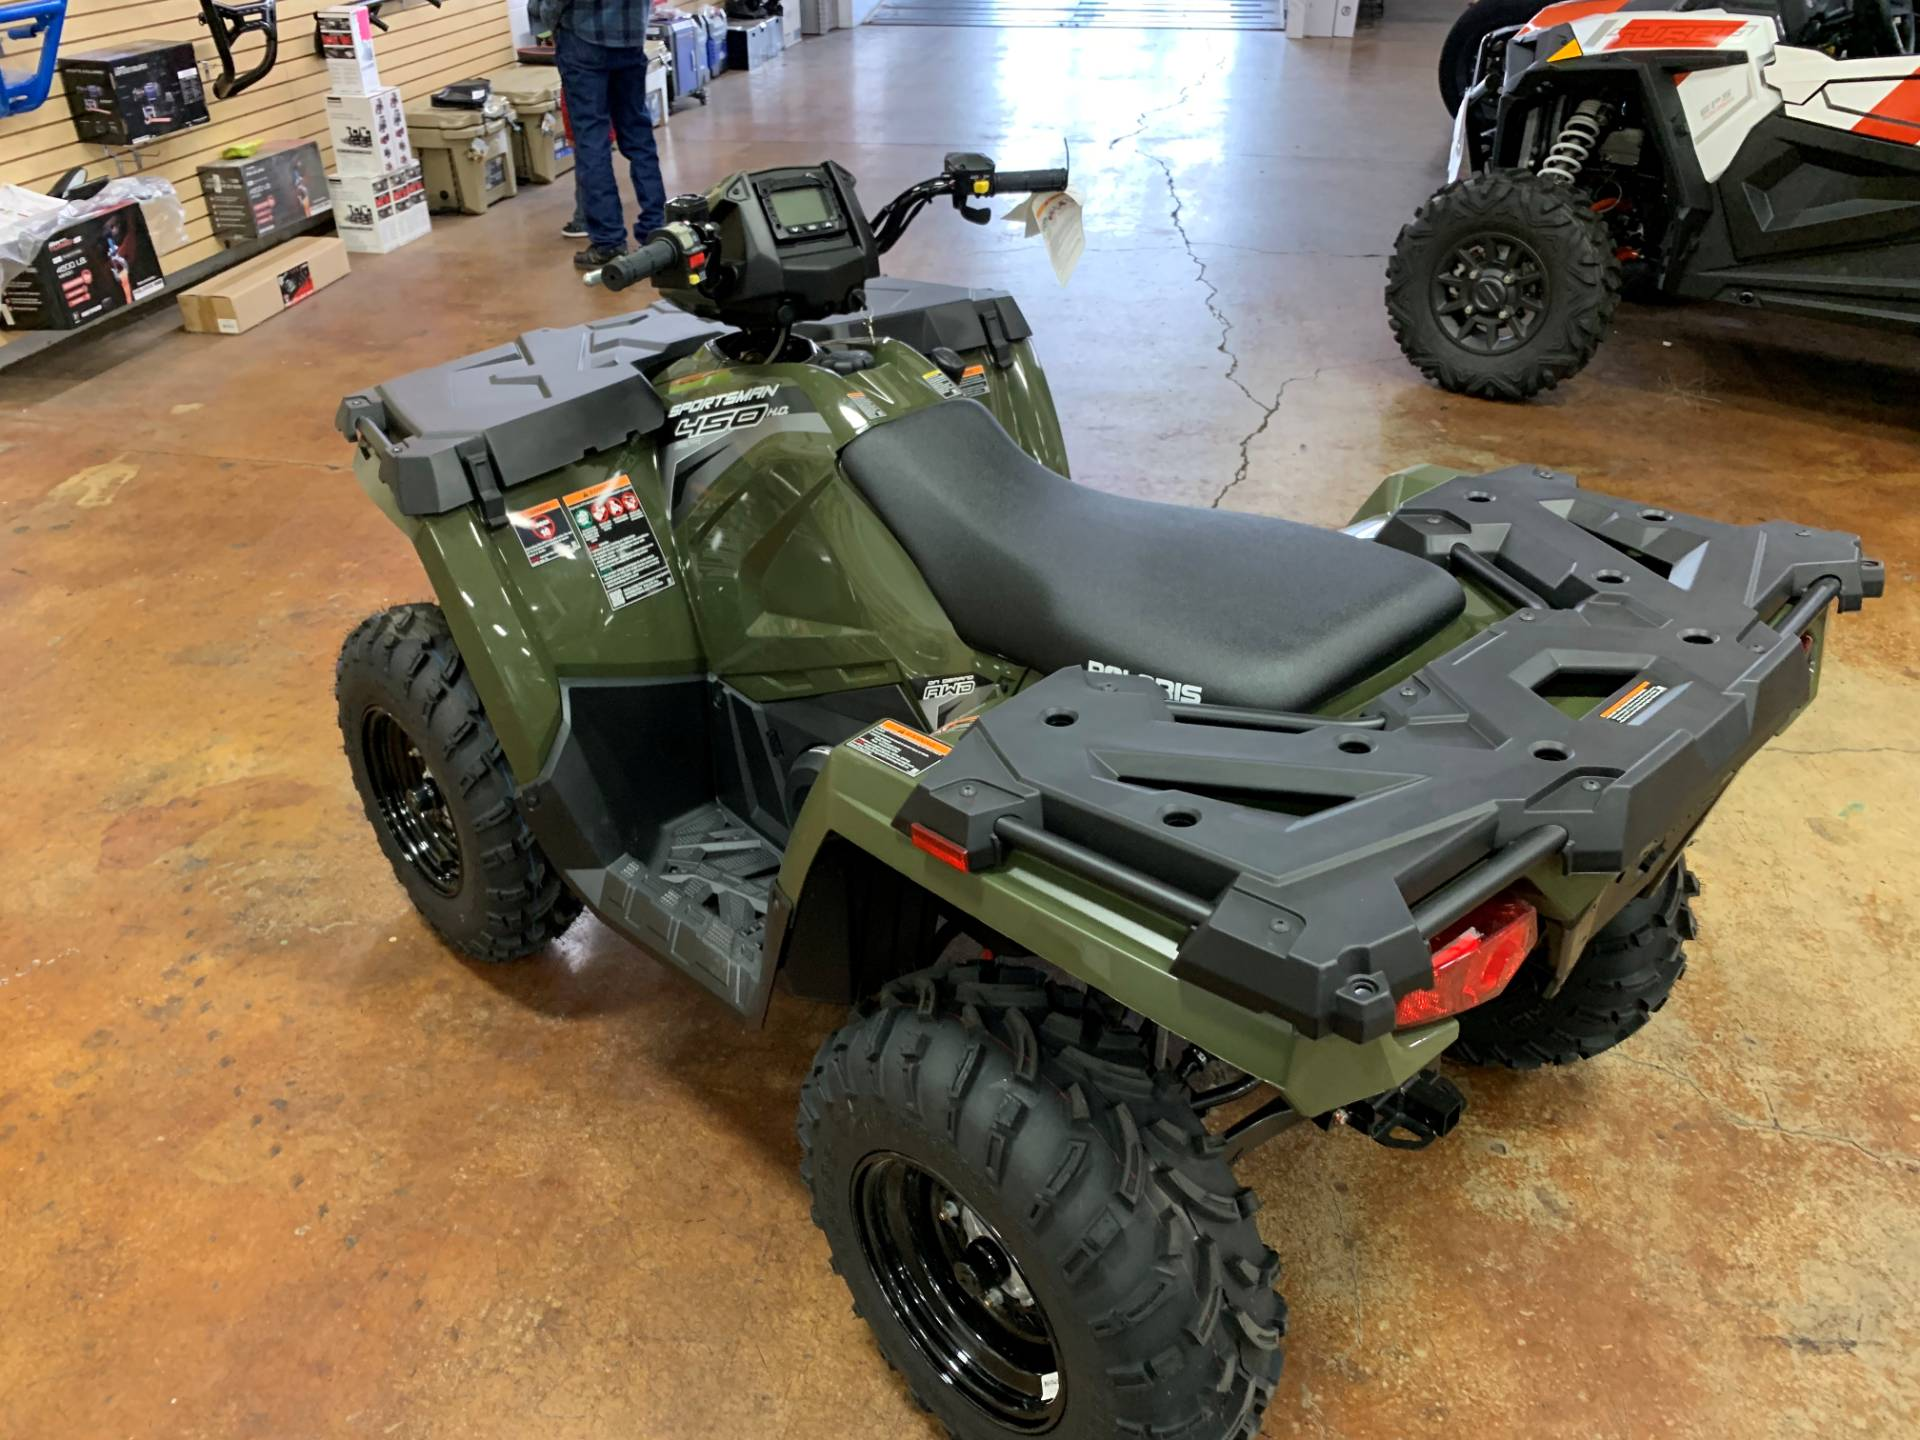 2019 Polaris Sportsman 450 H.O. in Tualatin, Oregon - Photo 3